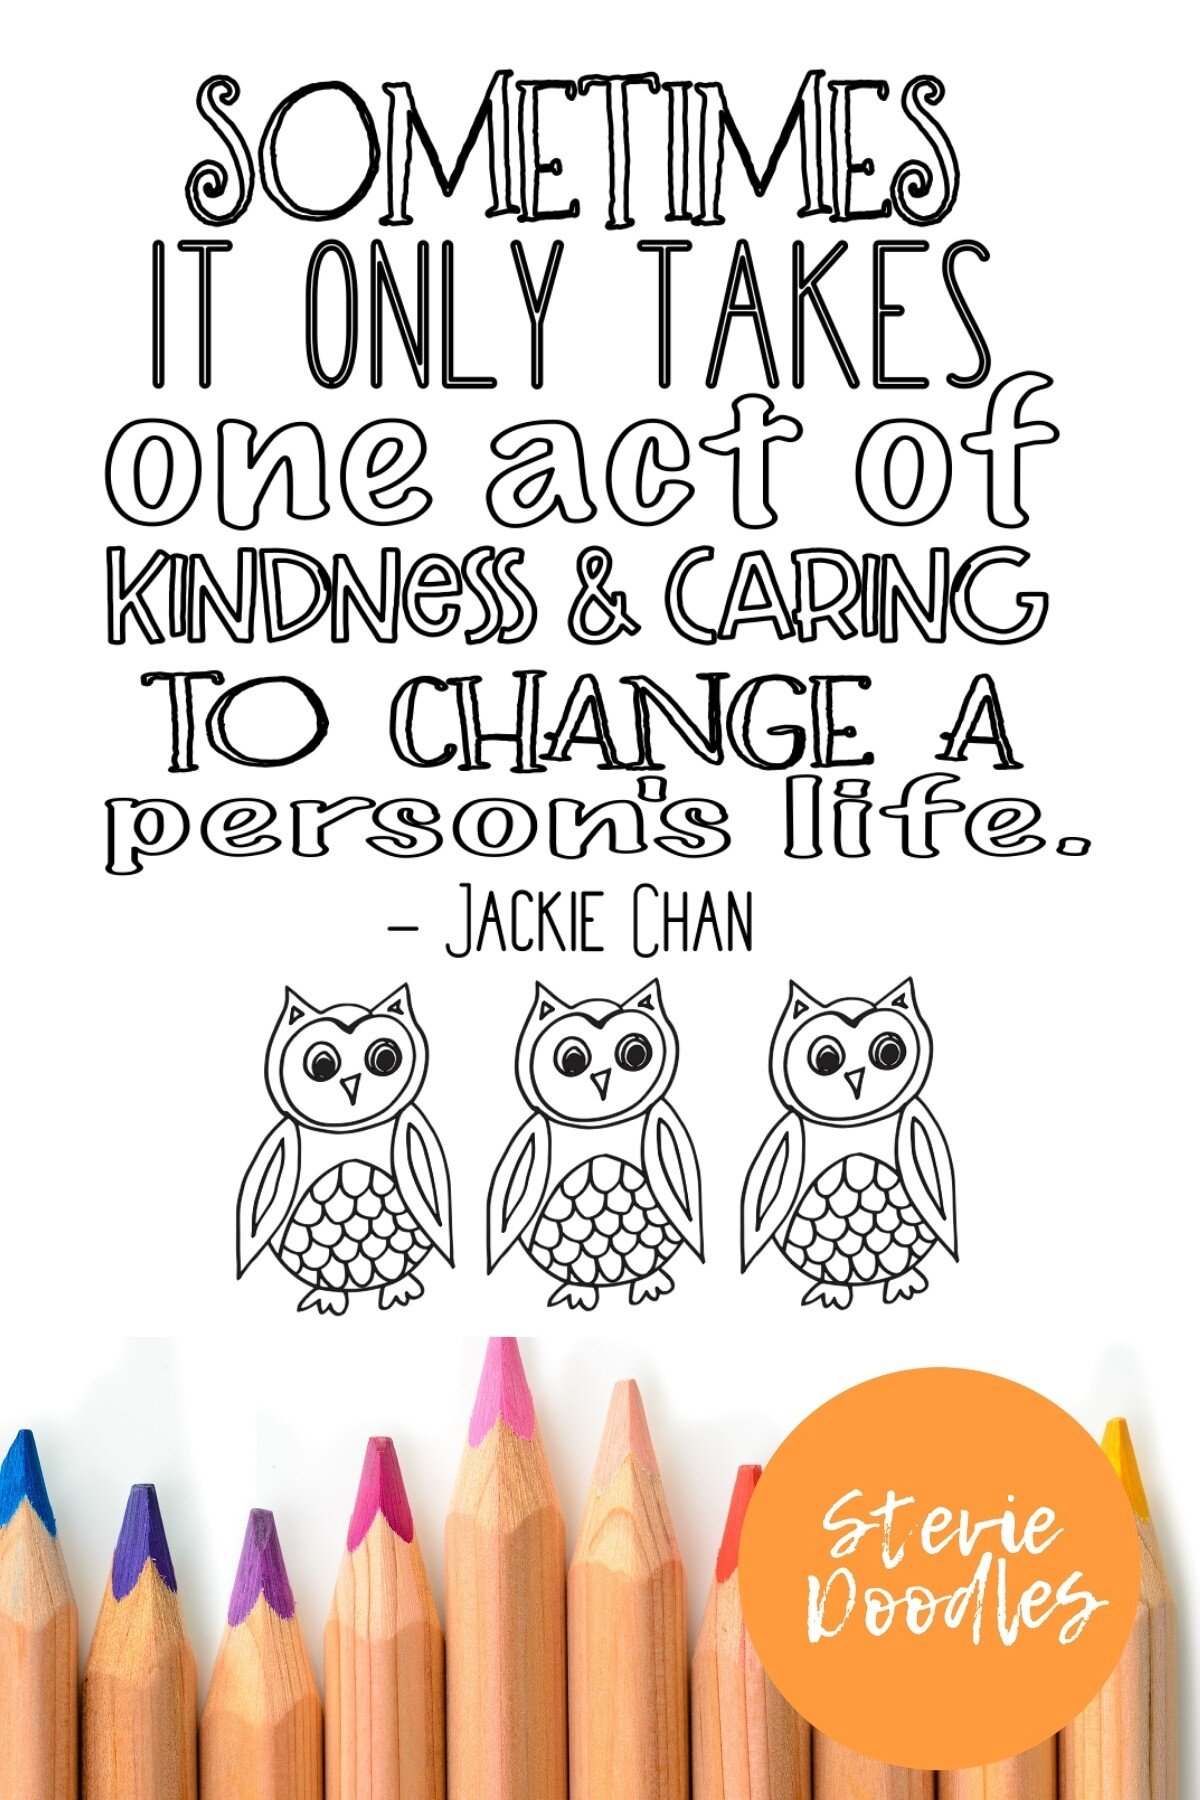 Sometimes It Only Takes One Act Of Kindness & Caring To Change A Person's Life - Jackie Chan - Owls- Free Coloring